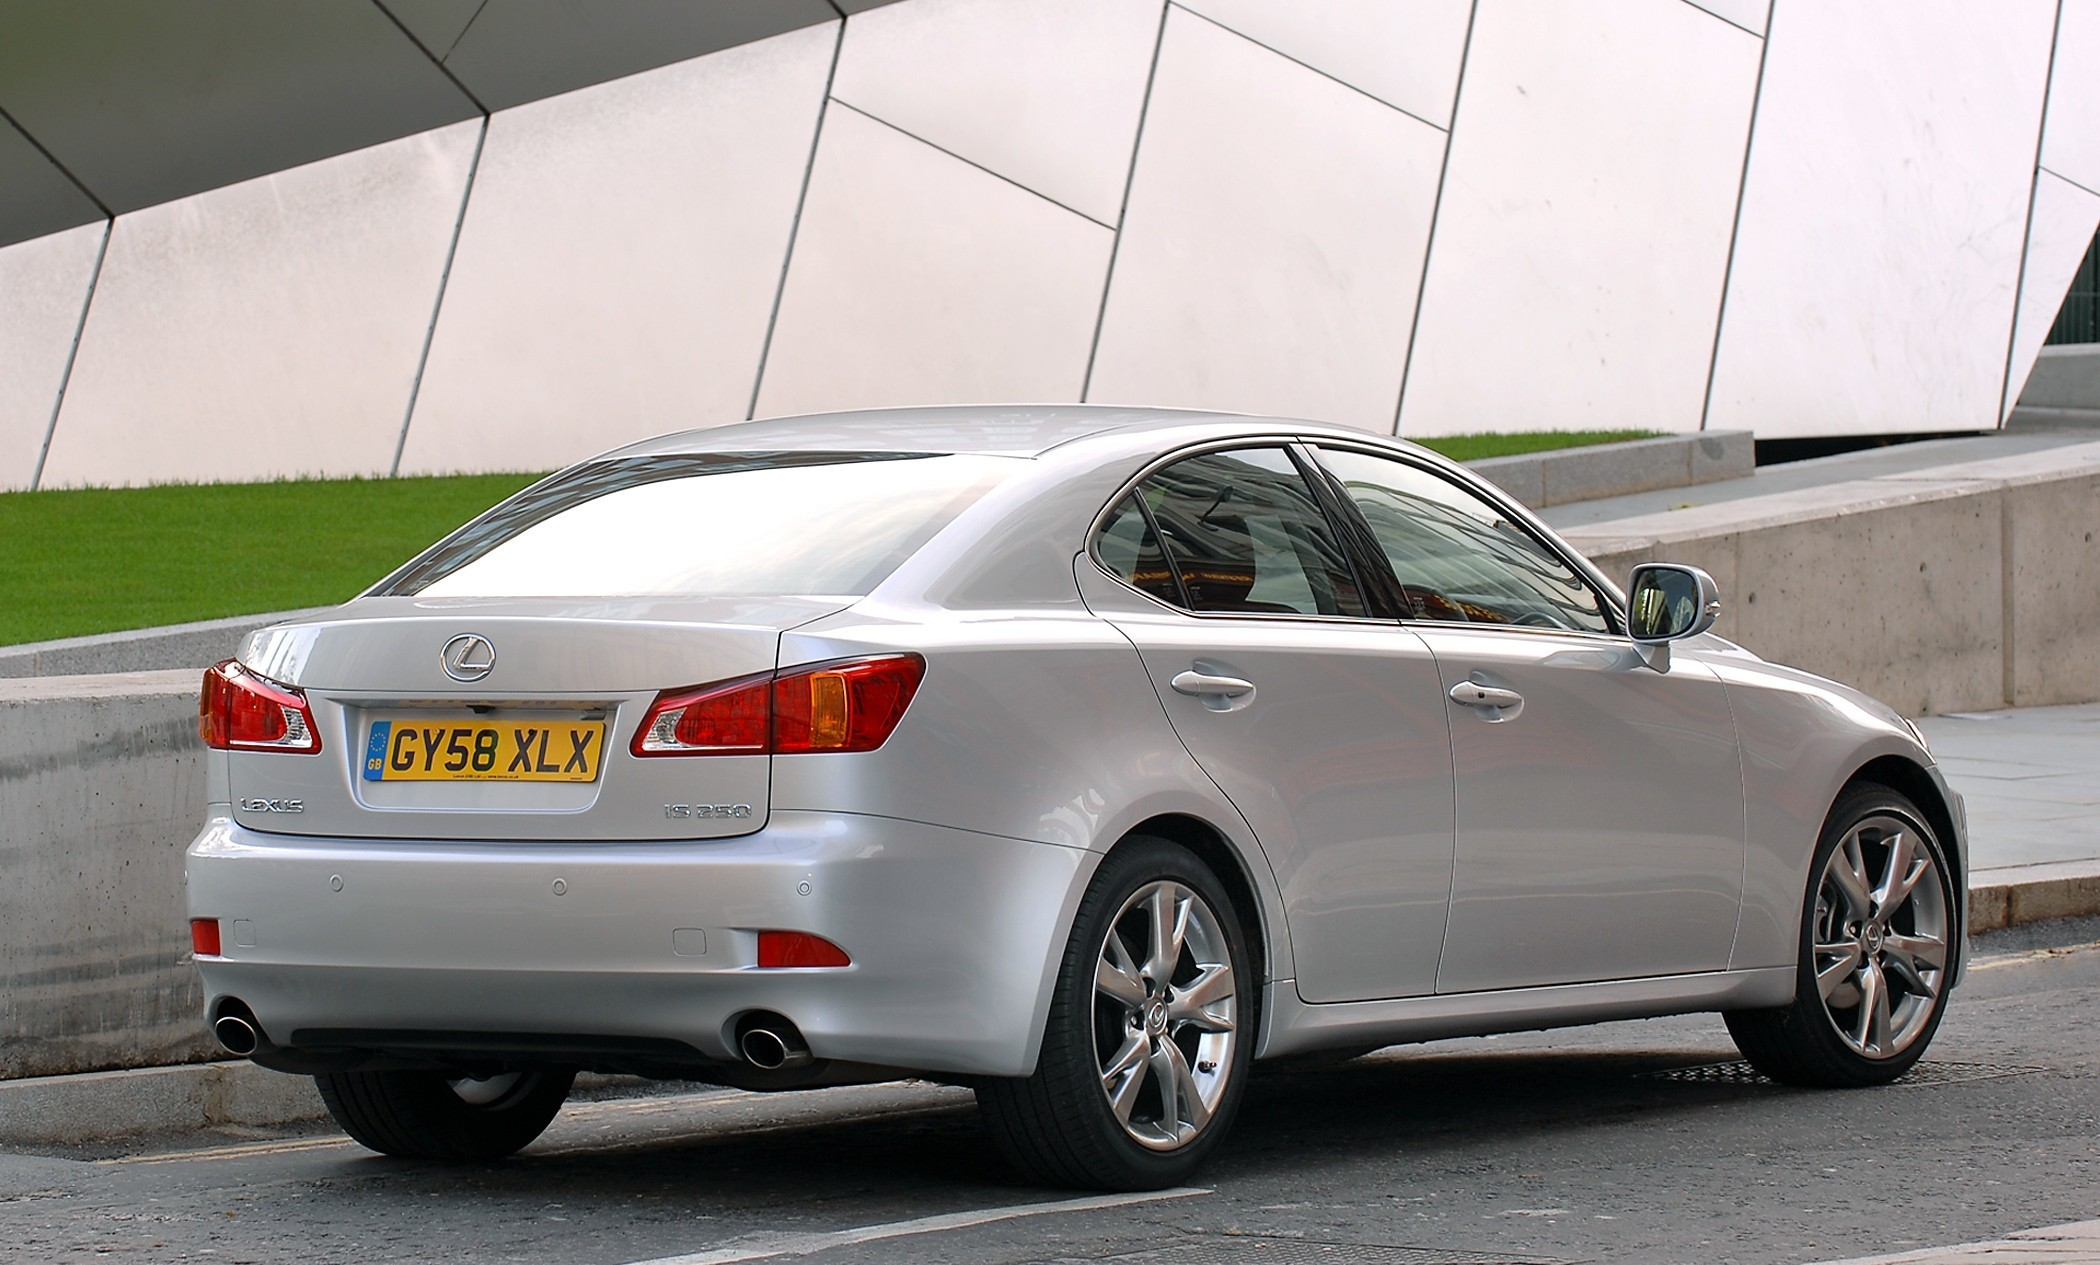 new 2009 lexus is range lower emissions and prices higher specifications. Black Bedroom Furniture Sets. Home Design Ideas